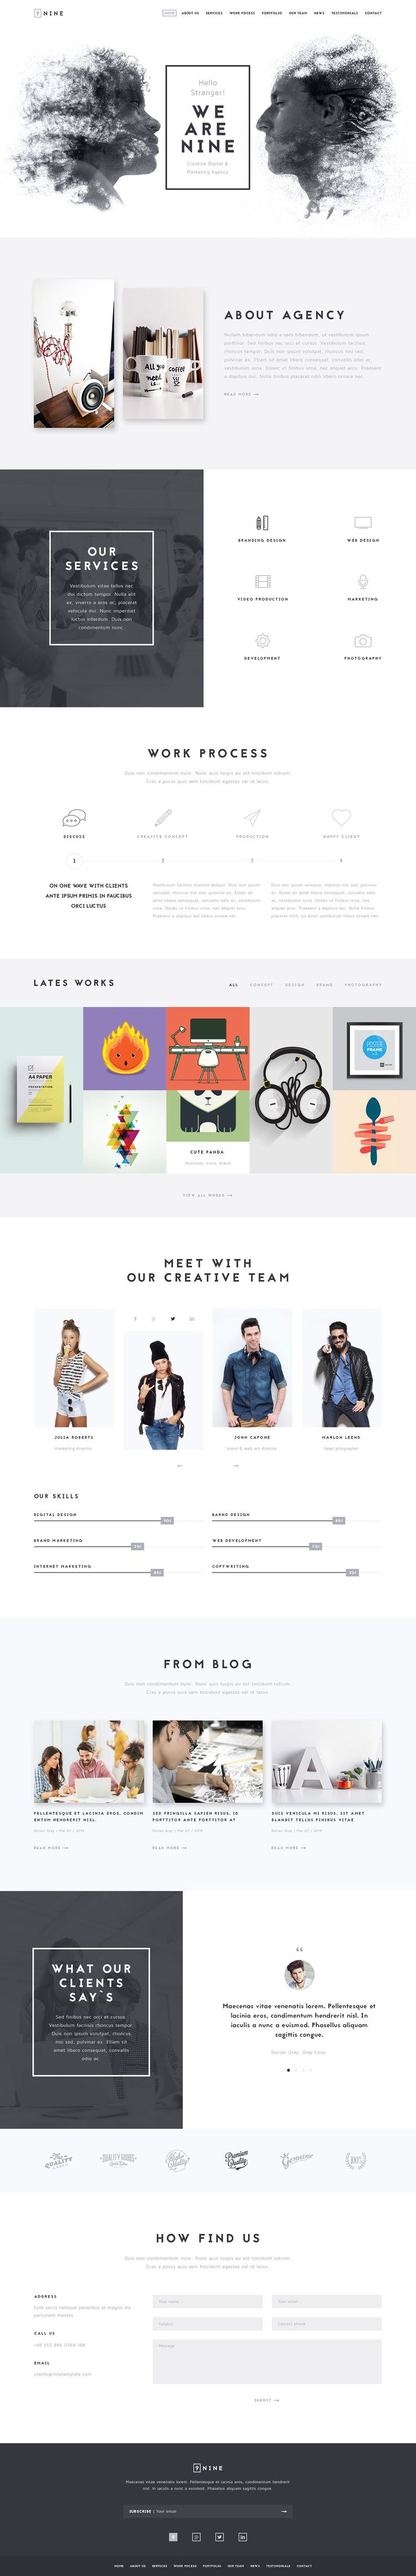 1000 Images About Design On Pinterest